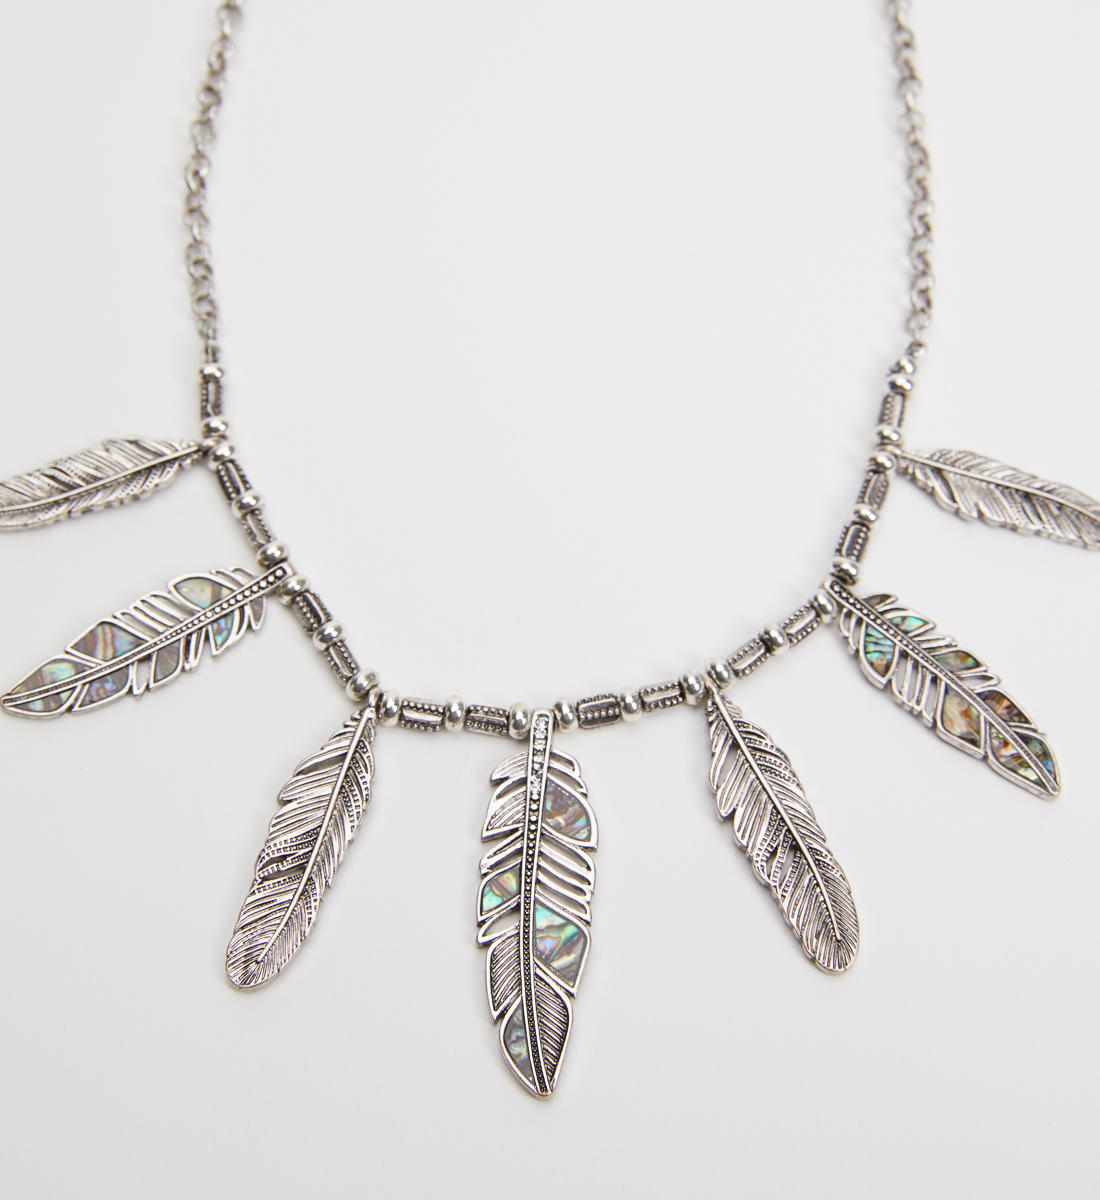 Silver-Tone Feather Statement Necklace, , hi-res